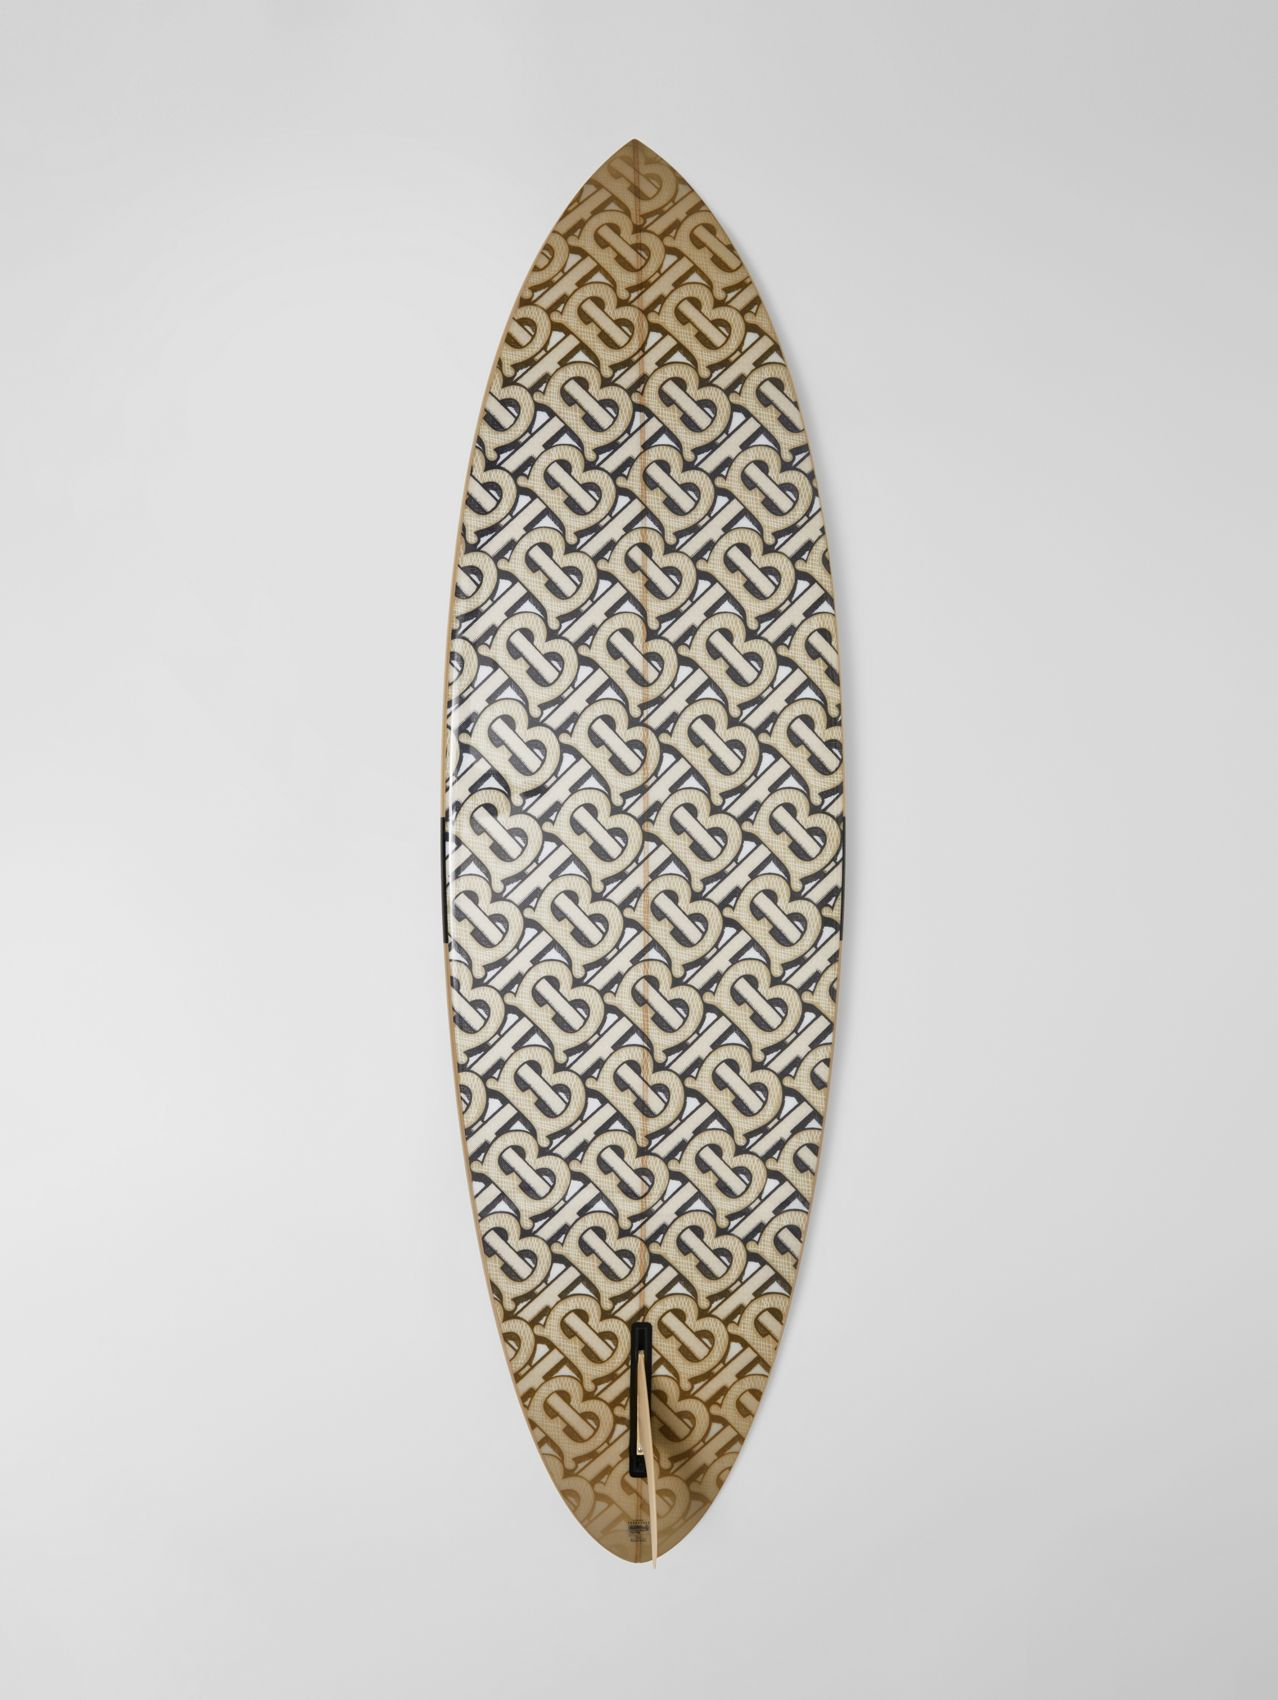 Monogram Print Surfboard in Dark Beige